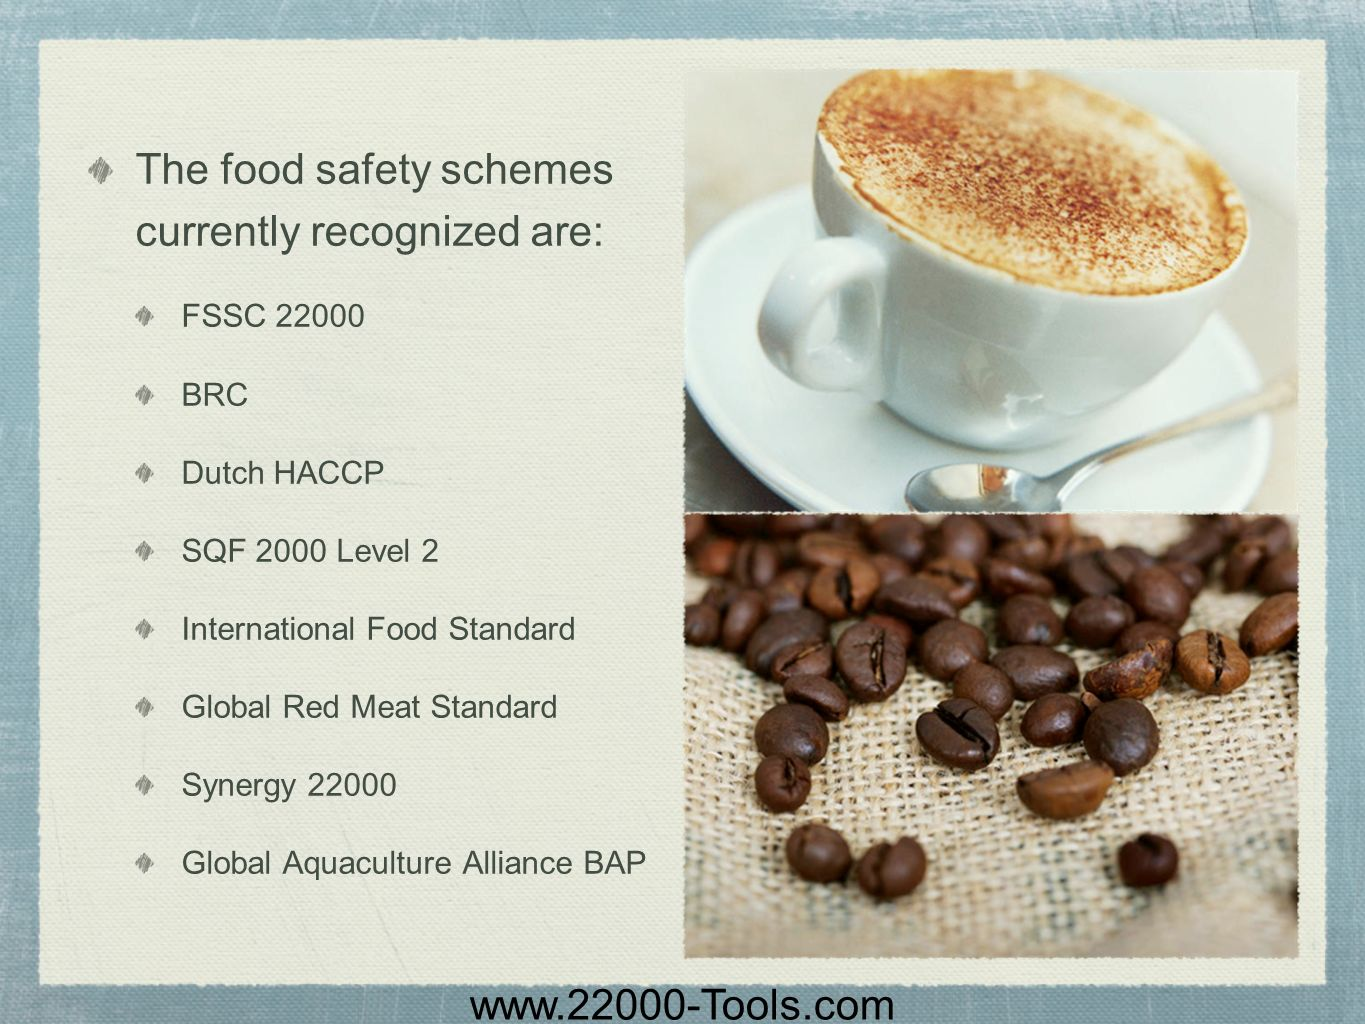 www.22000-Tools.com The food safety schemes currently recognized are: FSSC 22000 BRC Dutch HACCP SQF 2000 Level 2 International Food Standard Global R